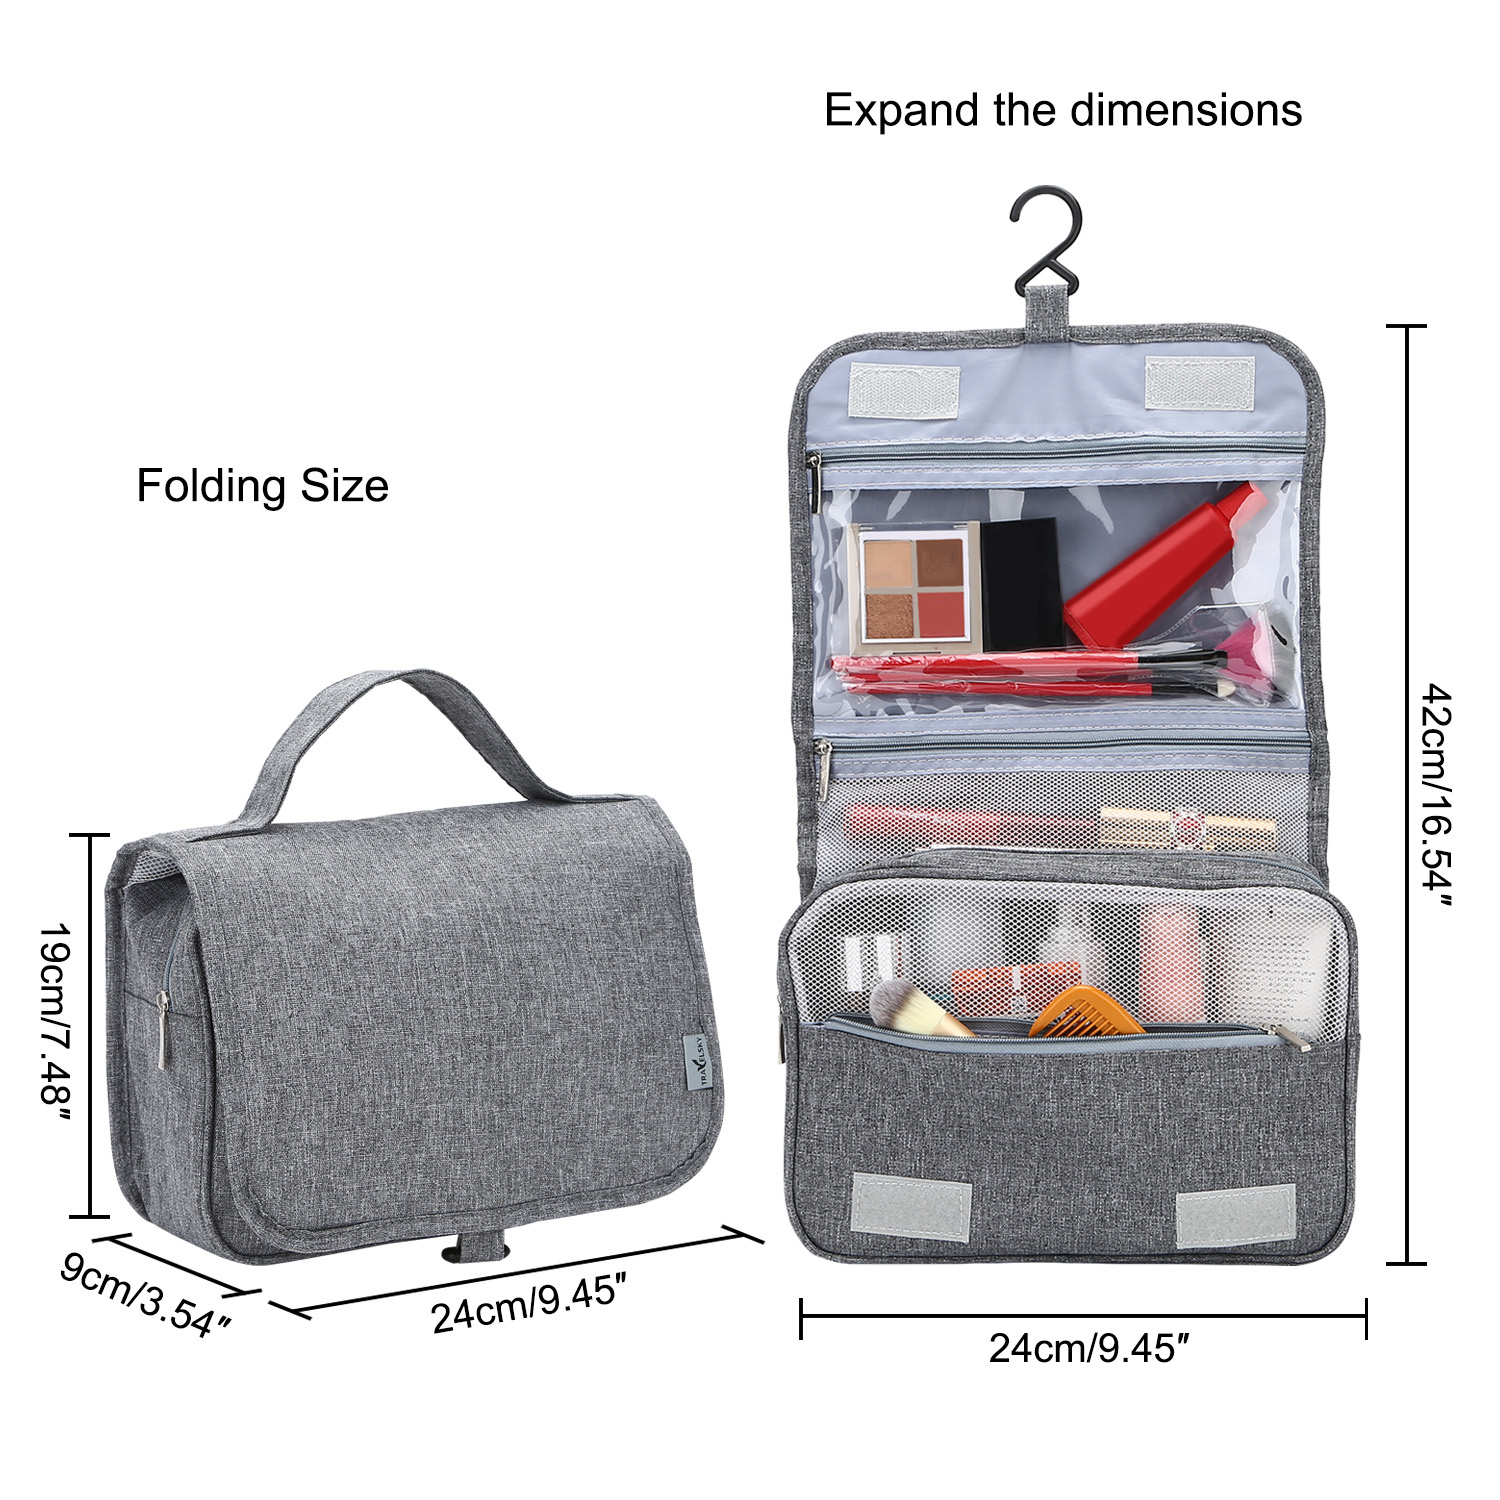 cbca096ee152 US Hanging Travel Toiletry Wash Bag For Men Women Cosmetics Bag for  Travelling